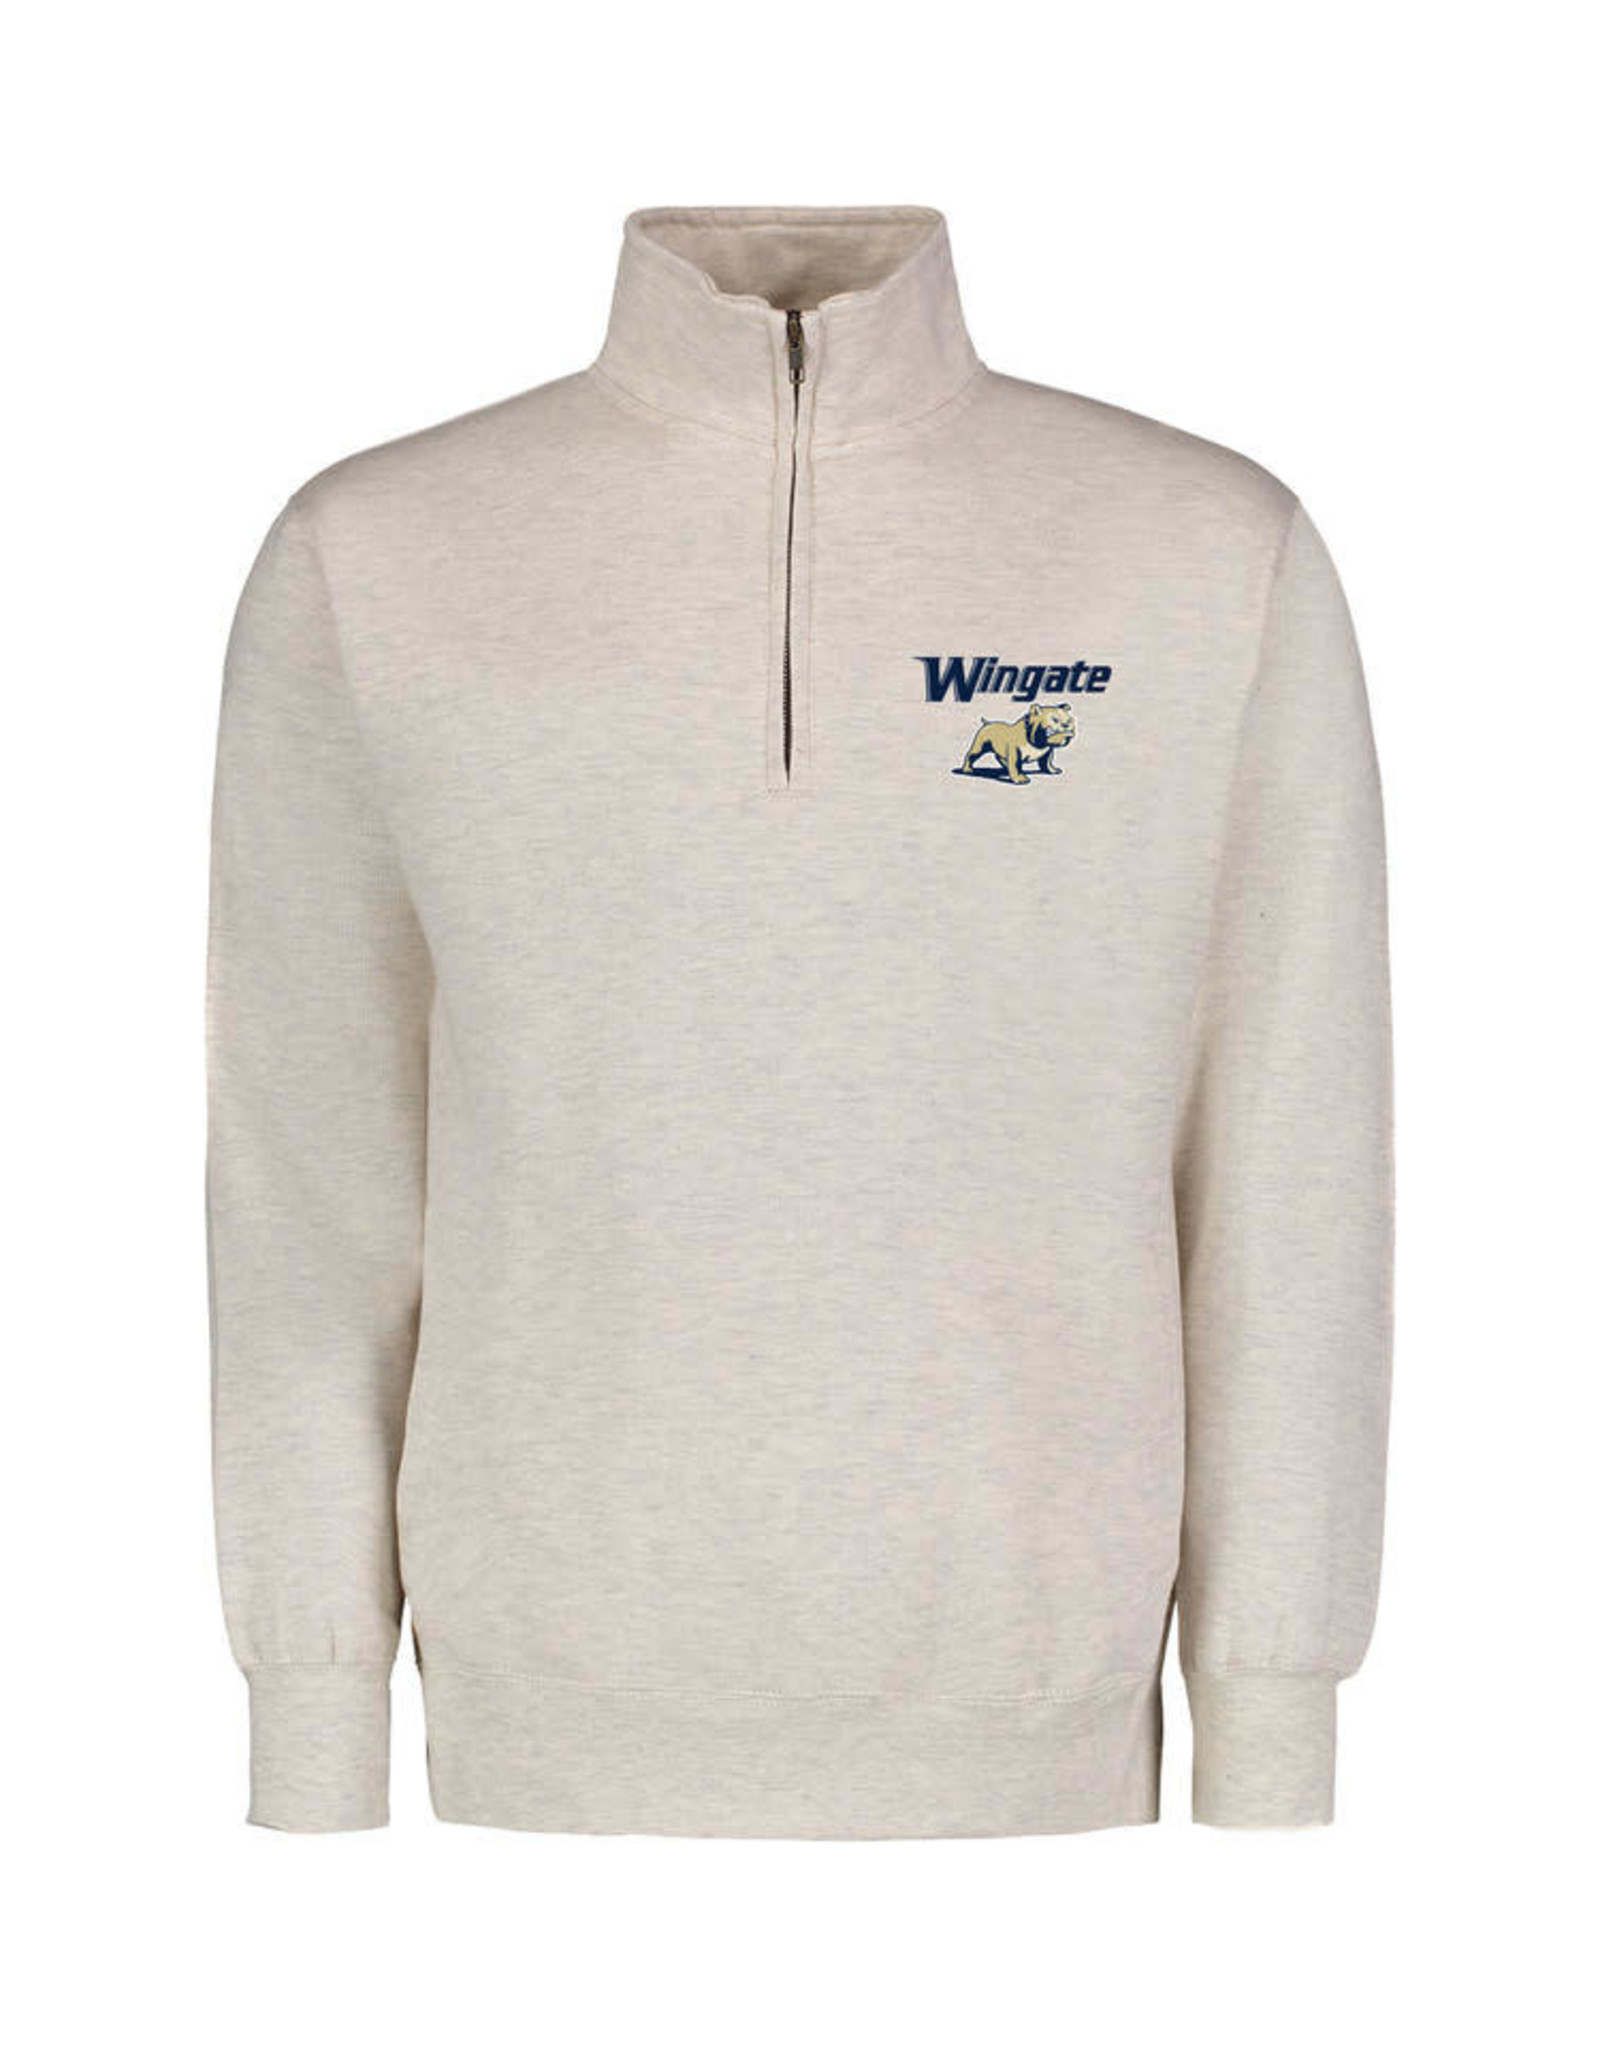 MV Sport Oatmeal 1/4 Zip Wingate Full Dog Embroidered